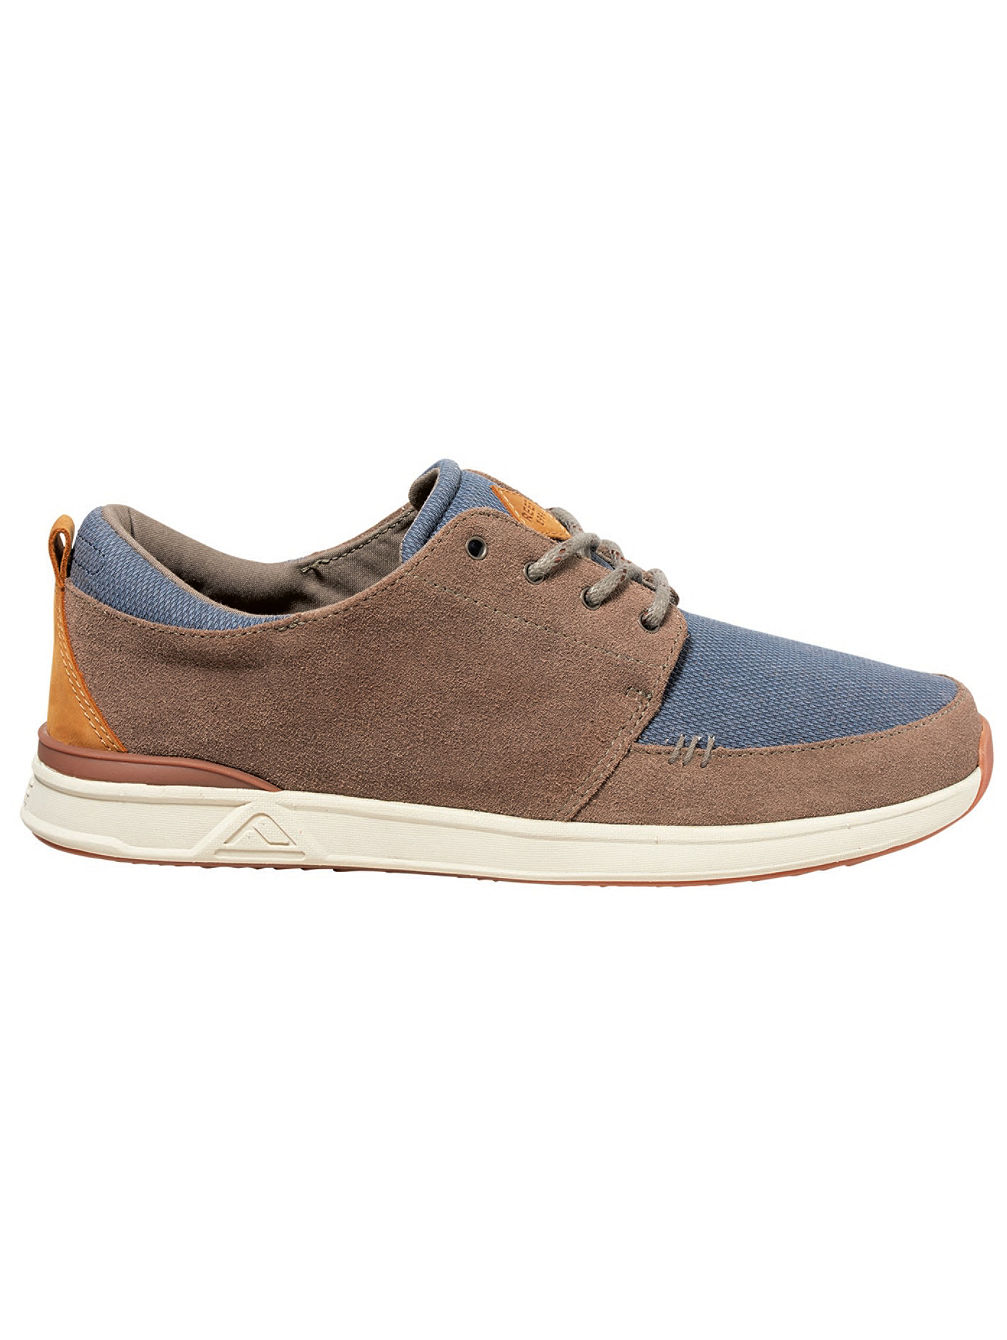 Rover Low SE Sneakers